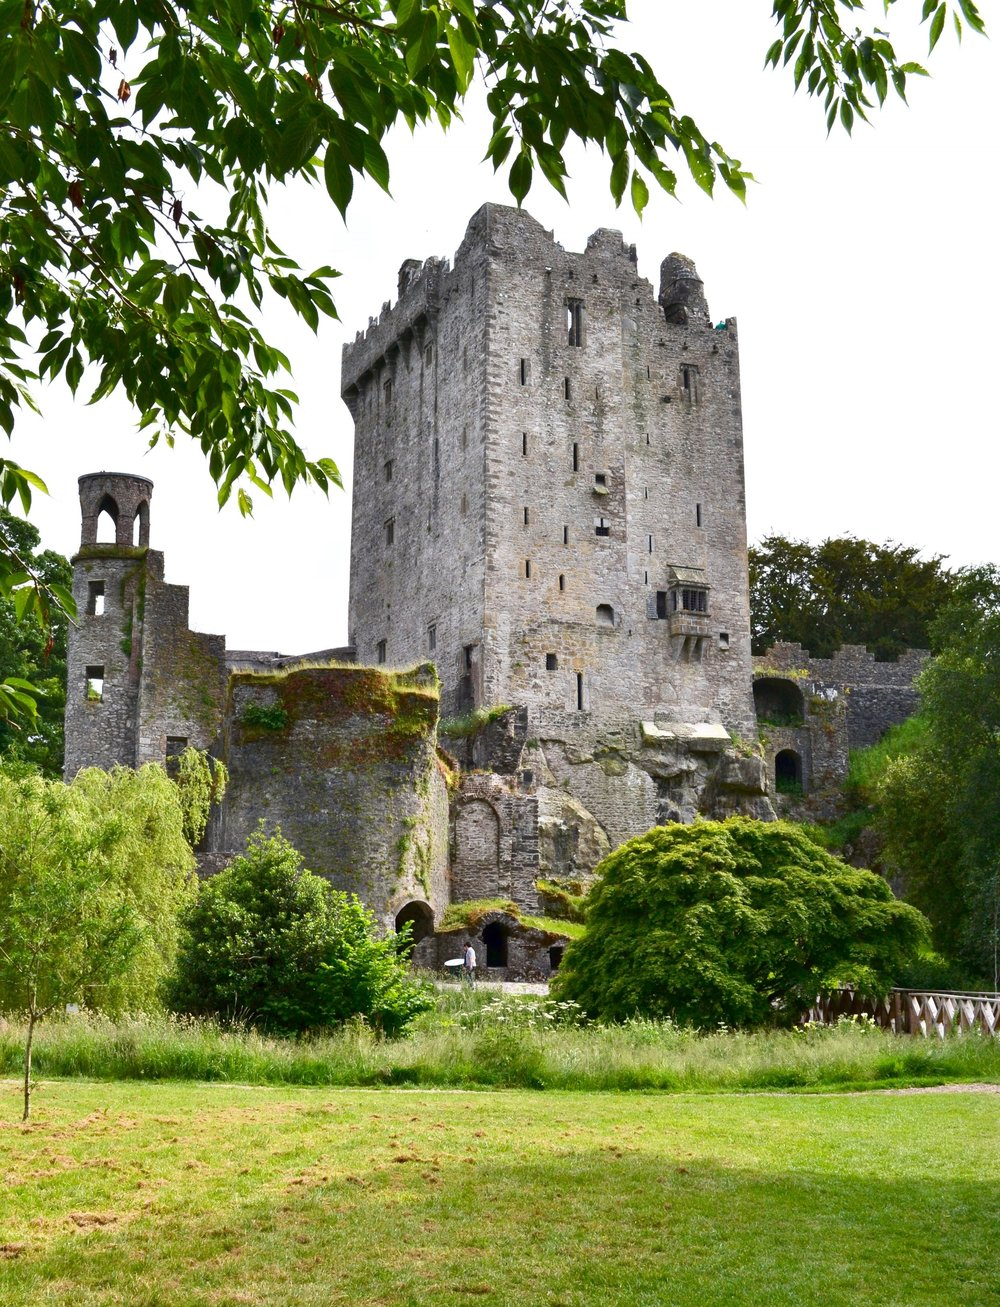 blarney castle - A beautiful historic castle nestled in the countryside of Ireland surrounded by gardens, cattle and sheep. It's best known for laying upside down to kiss the famous stone to get the gift of